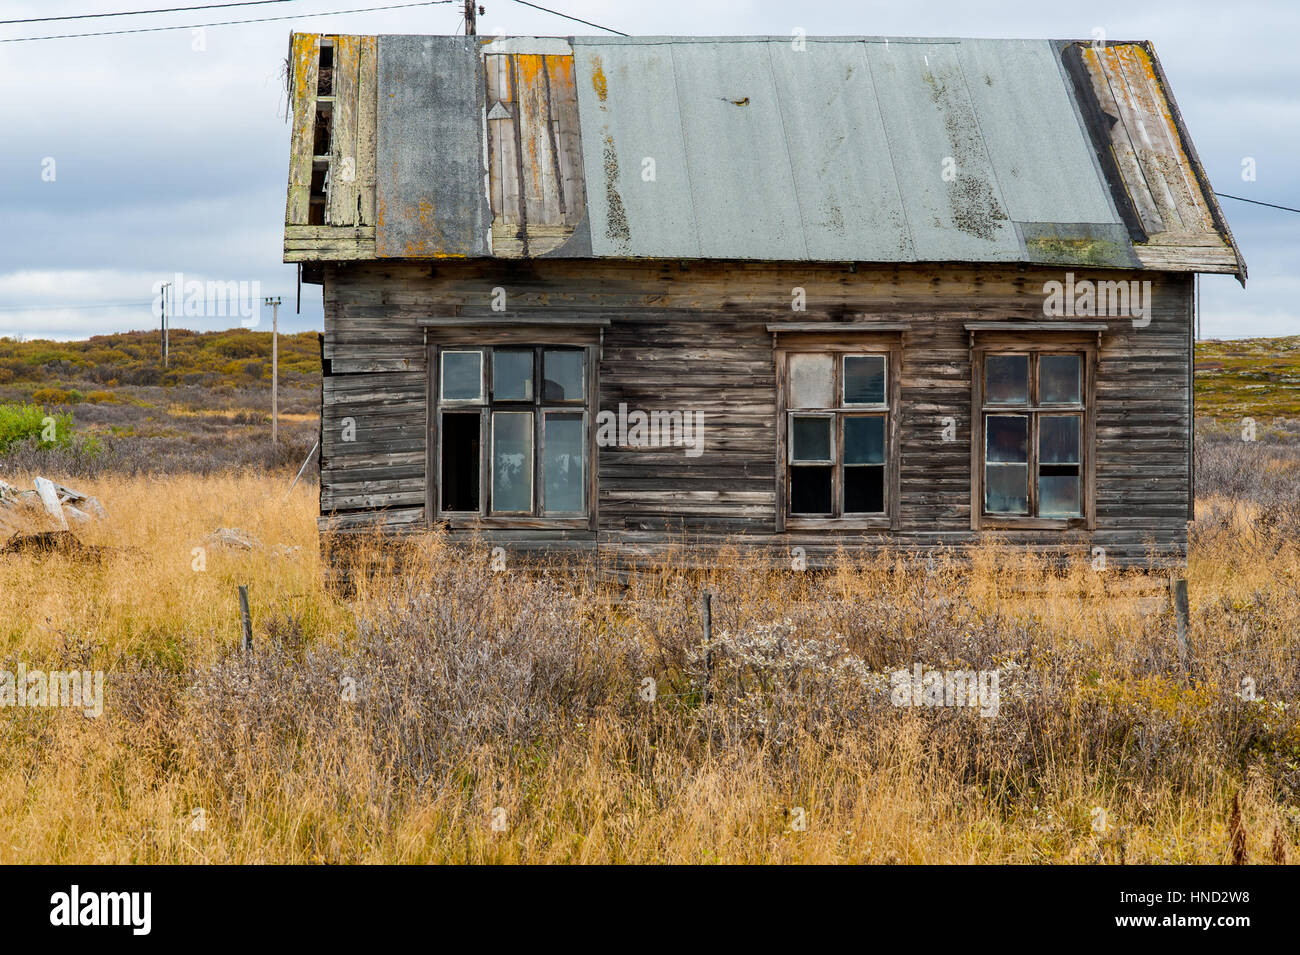 Old wooden decrepit house in need of repair with damaged for Need a house